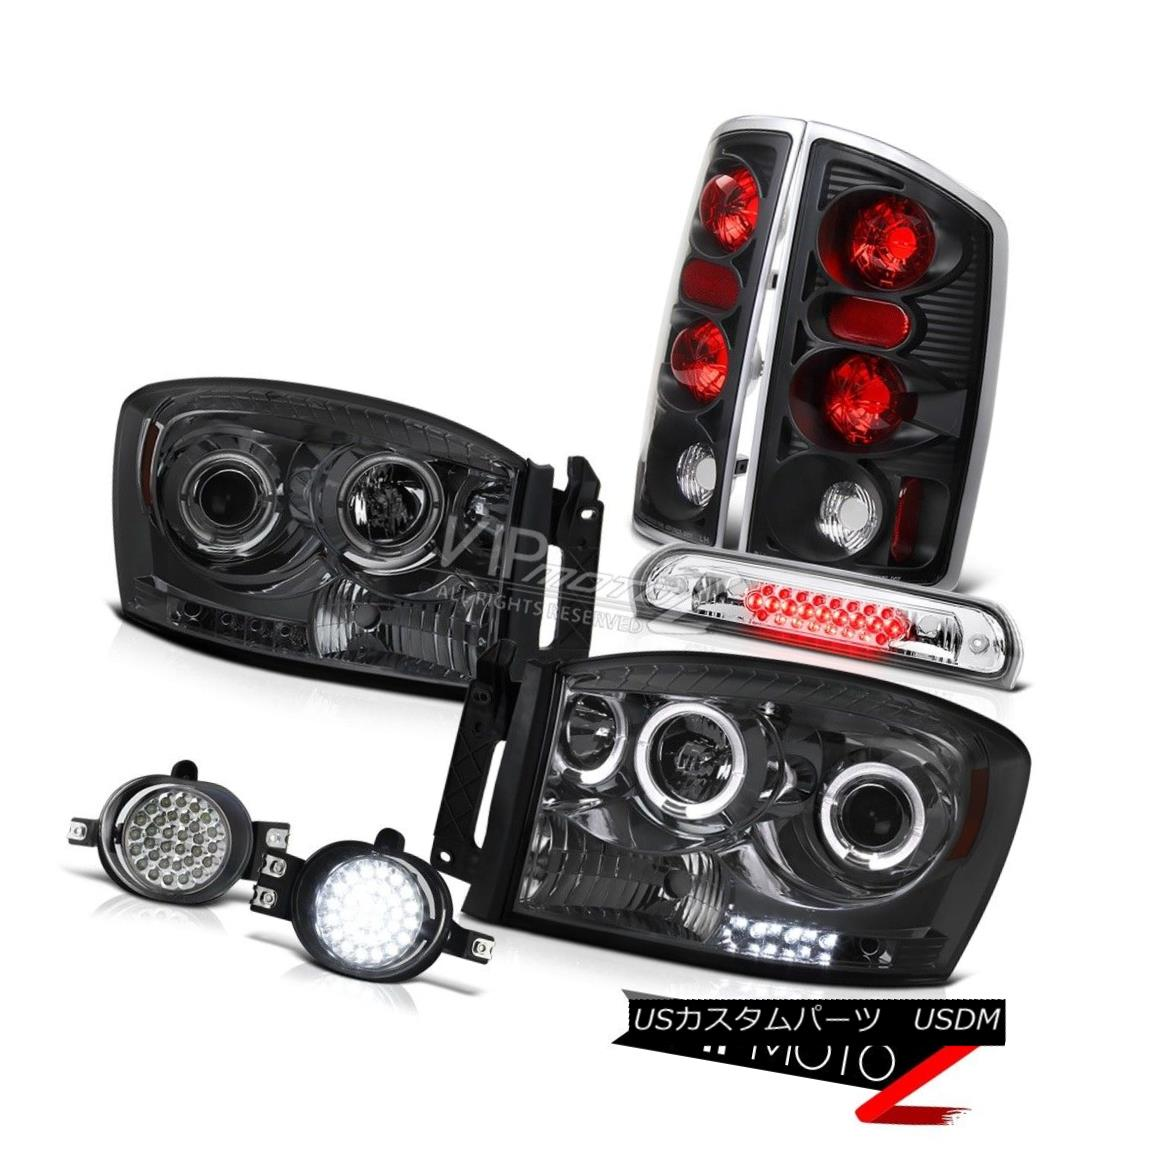 ヘッドライト Smoke LED Halo Headlights Black Tail Lights Brake Cargo 2006 Dodge Ram PowerTech Smoke LED Haloヘッドライトブラックテールライトブレーキカーゴ2006 Dodge Ram PowerTech